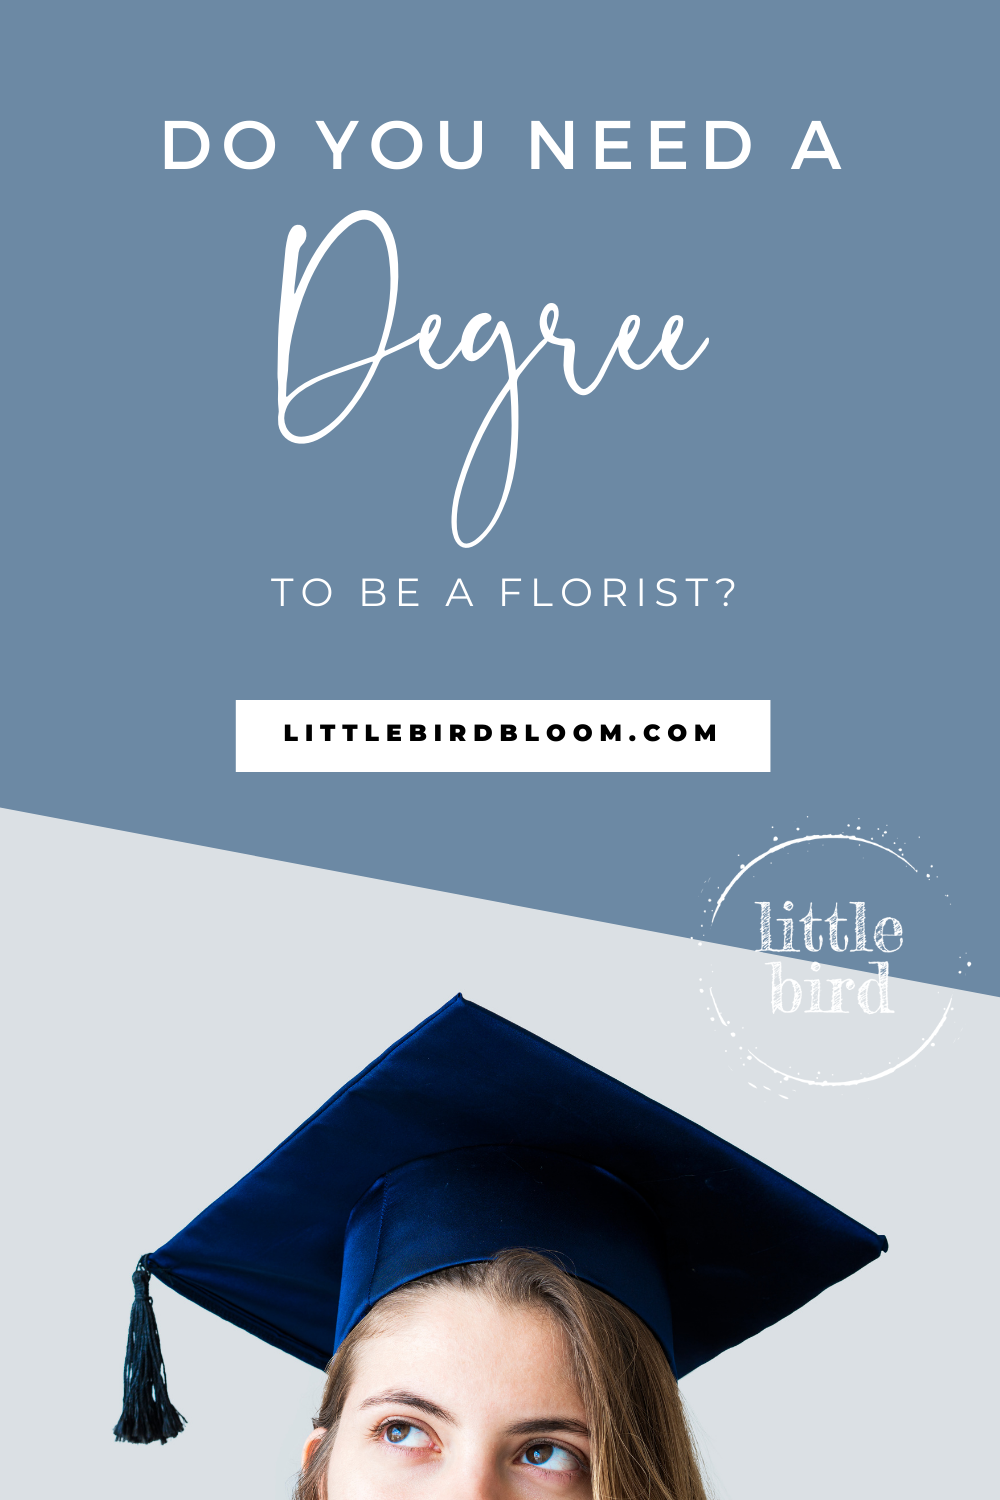 Do you need a degree to be a florist?